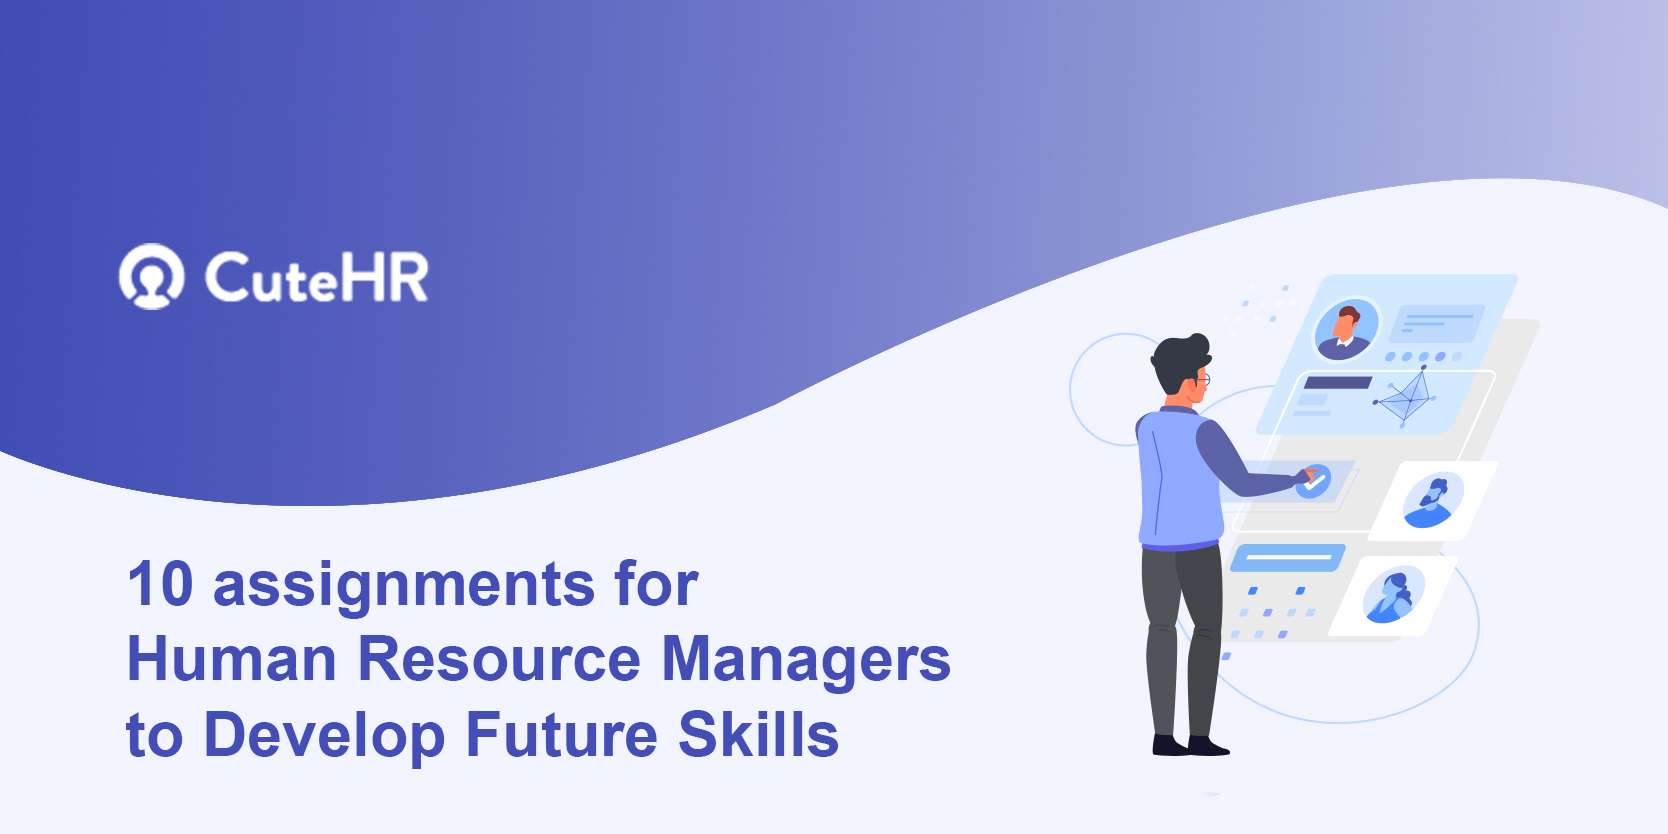 10_assignments_for_Human_Resource_Managers_to_develop_future_skills